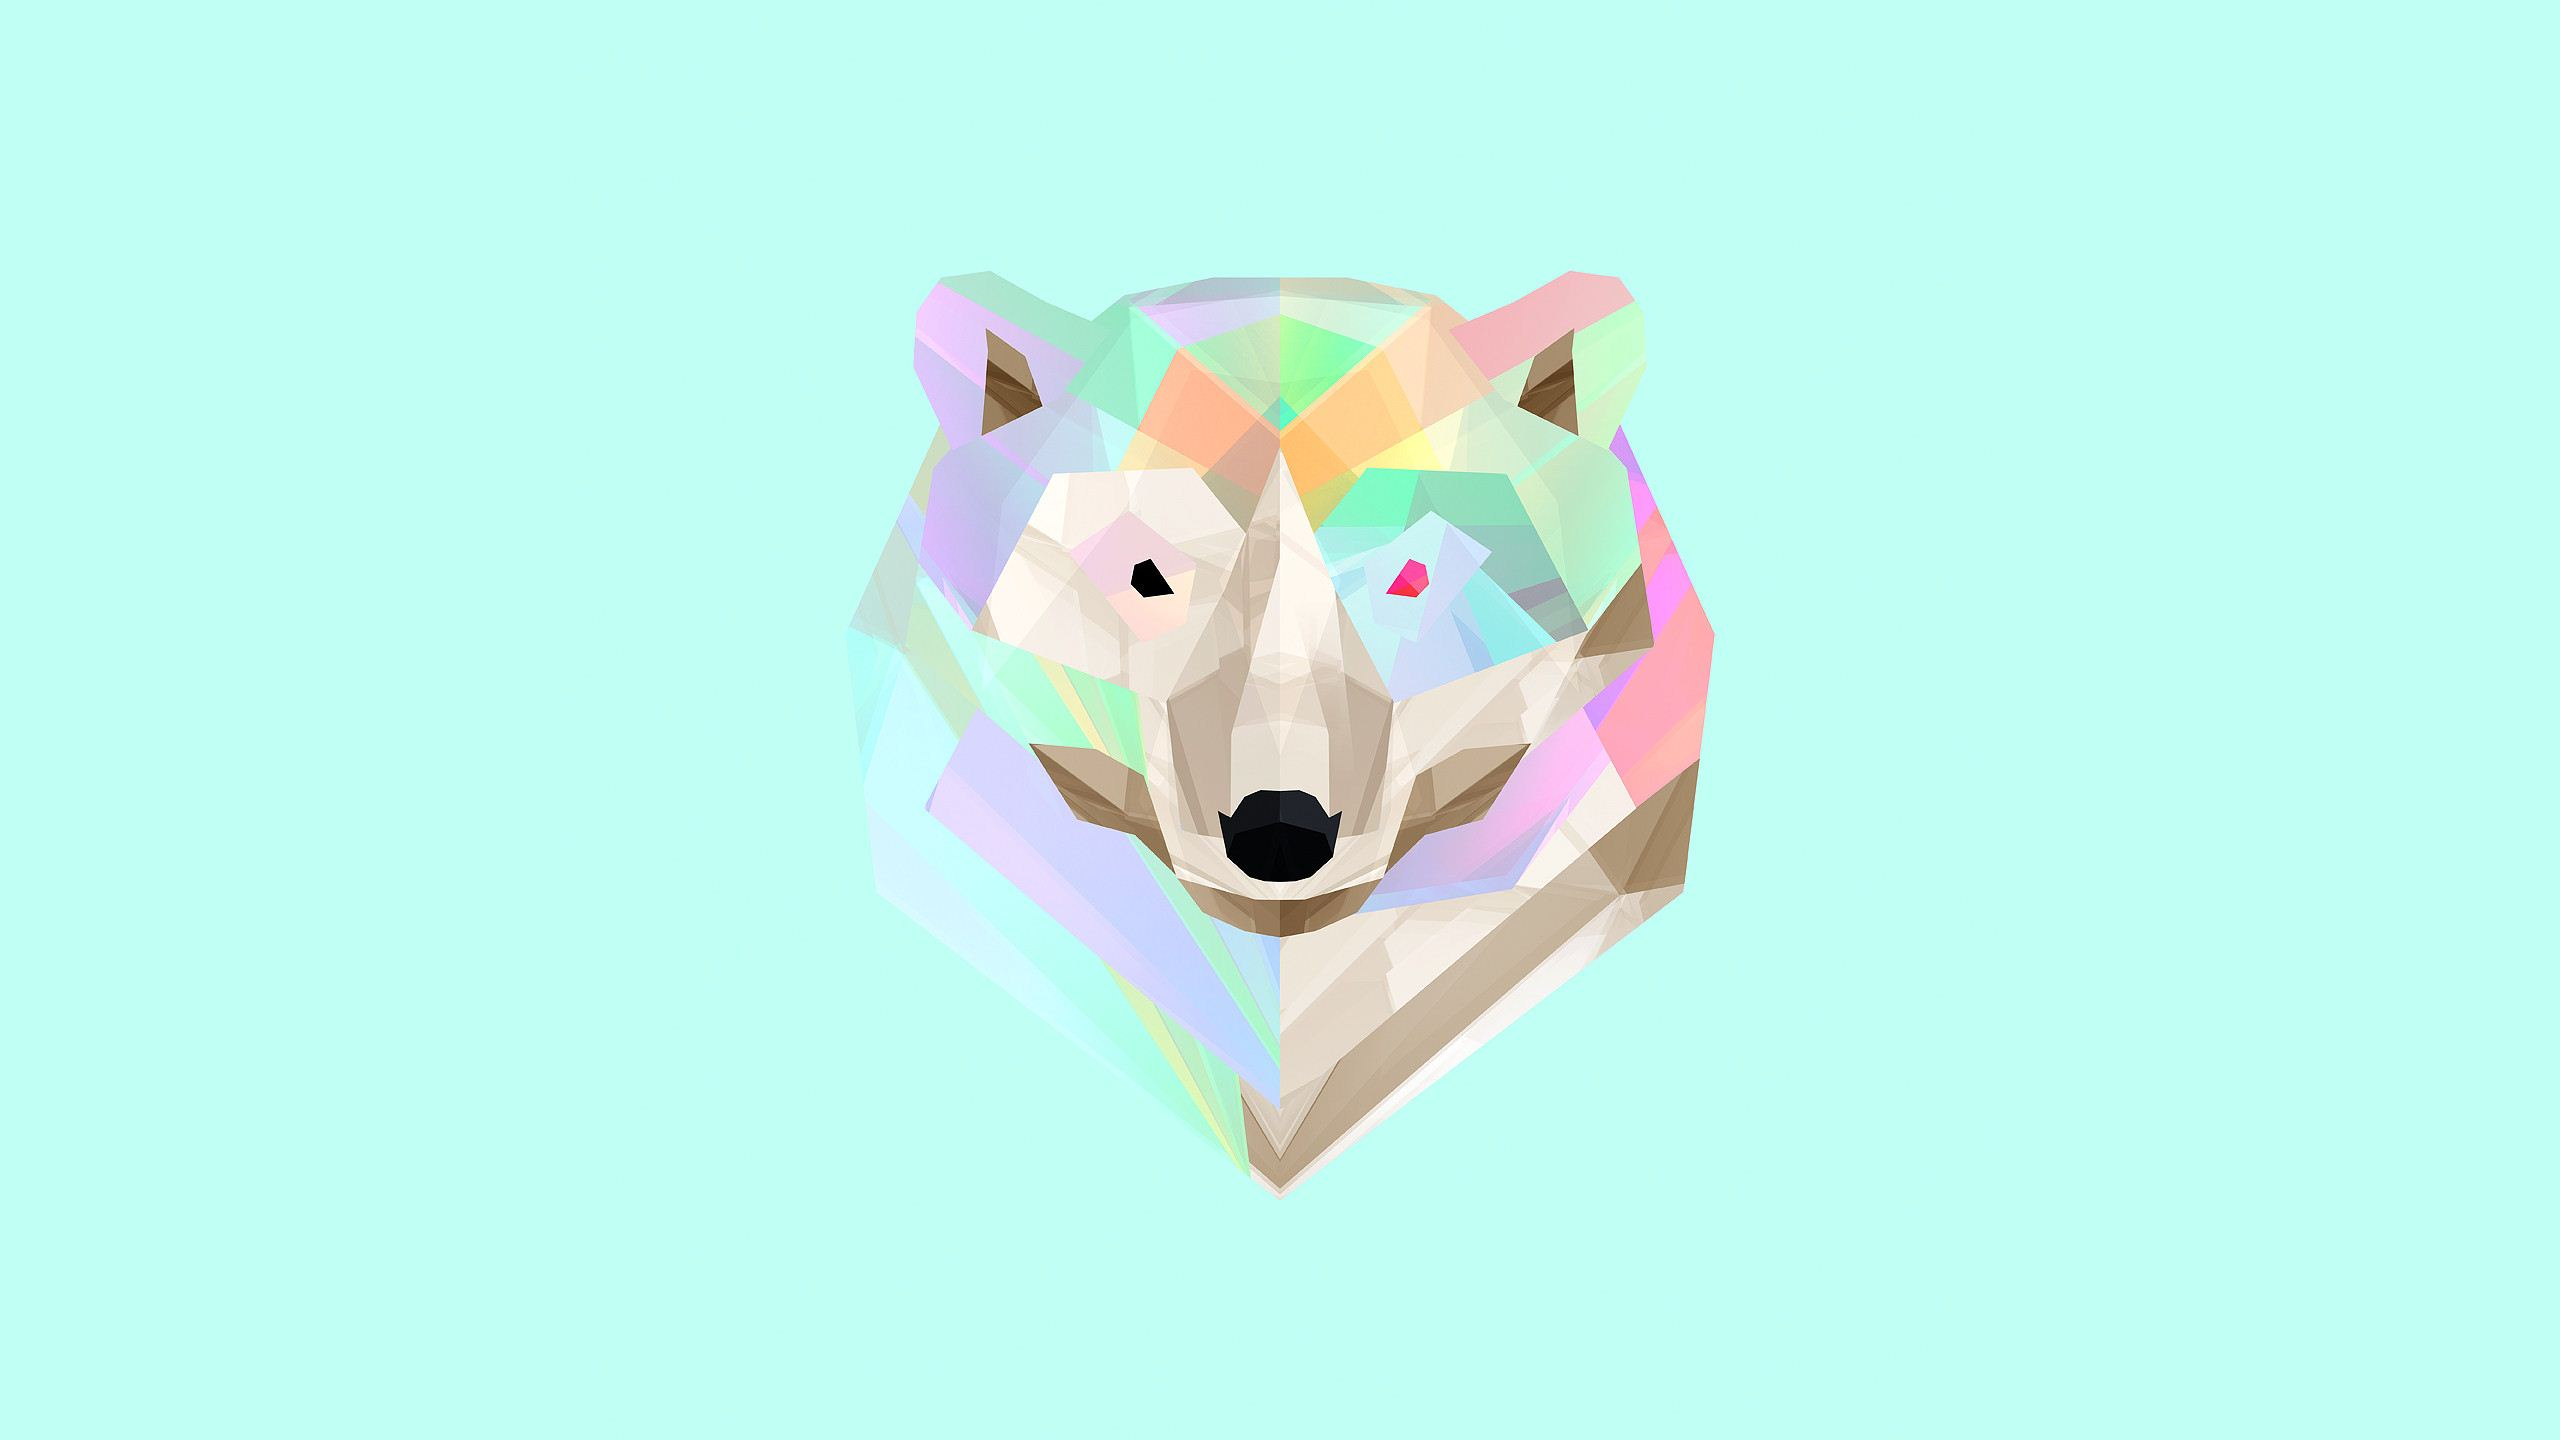 amazing low poly wallpaper 35940